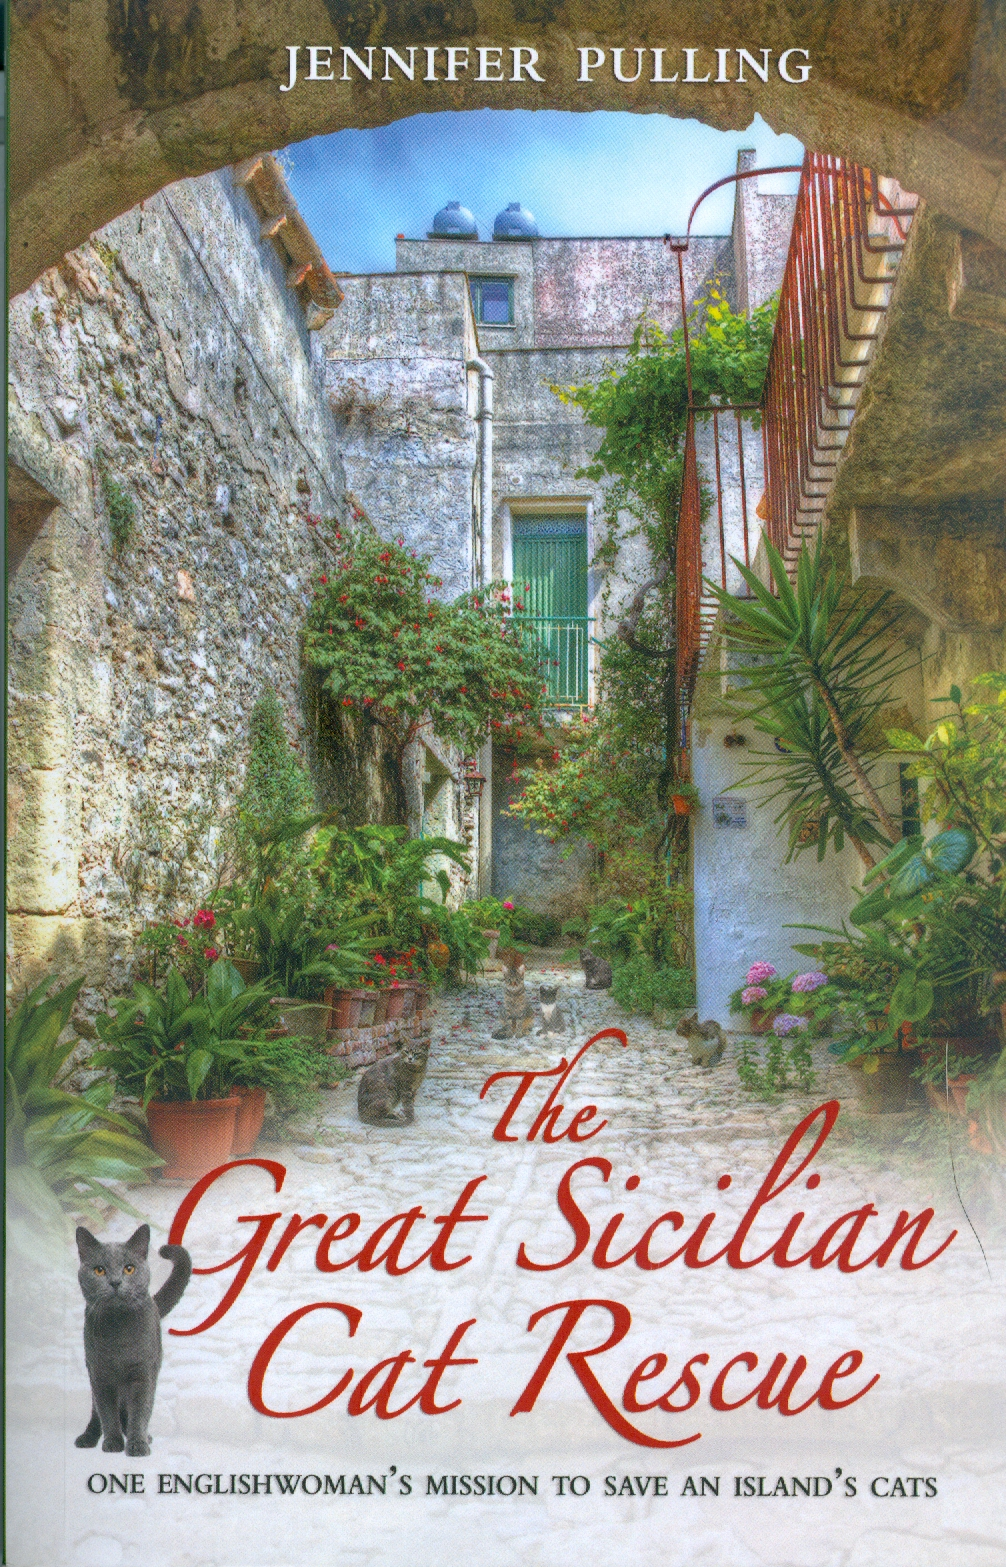 The Great Sicilian Cat Rescue by Jennifer Pulling